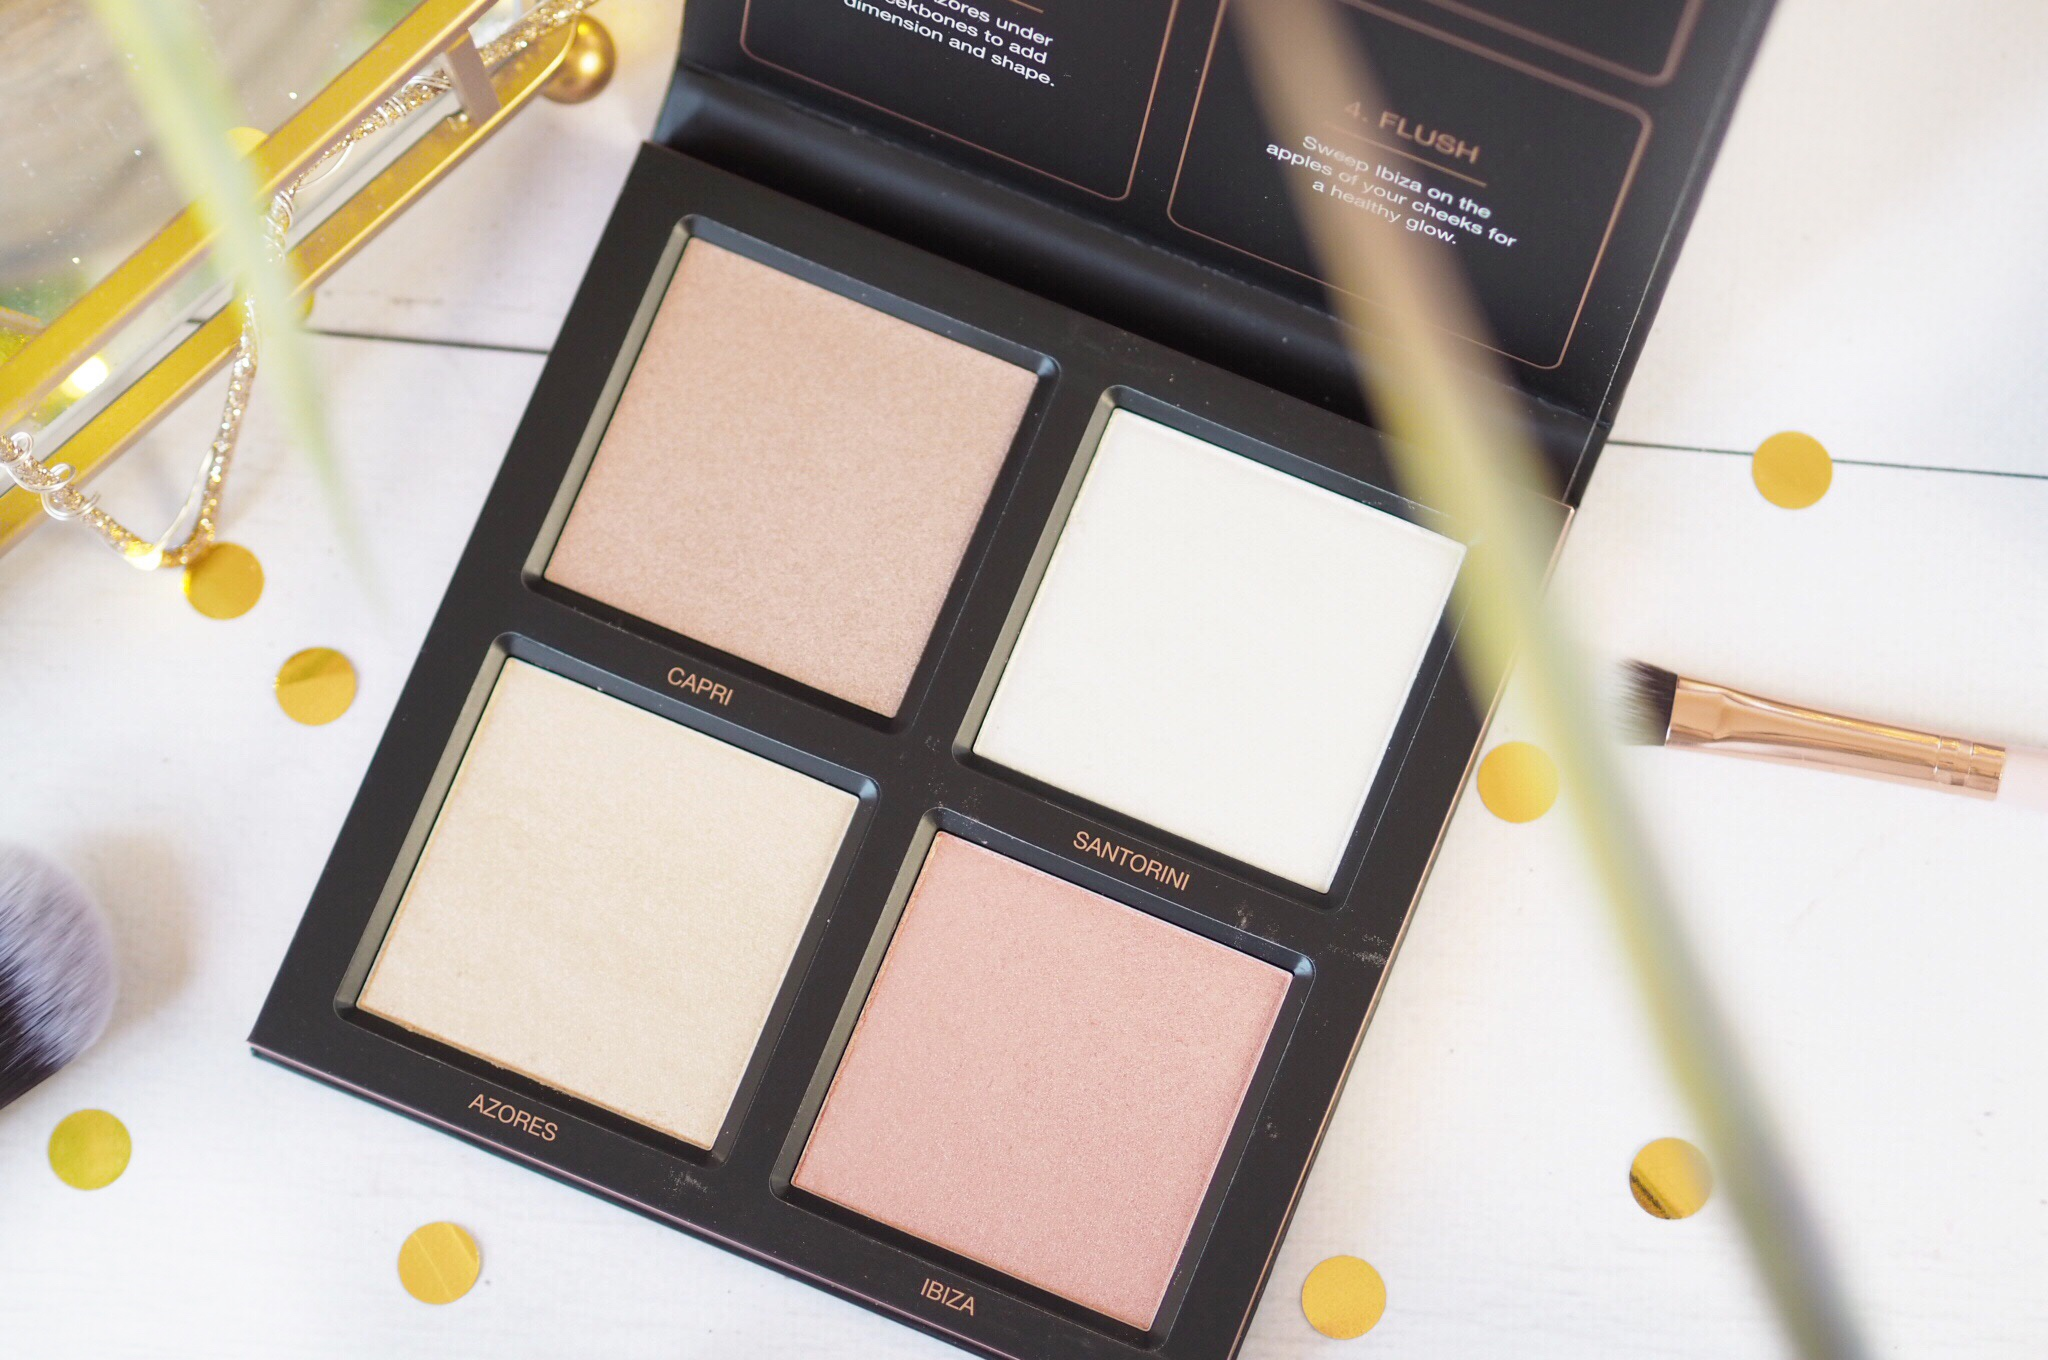 Huda 3D Highlight Palette Review